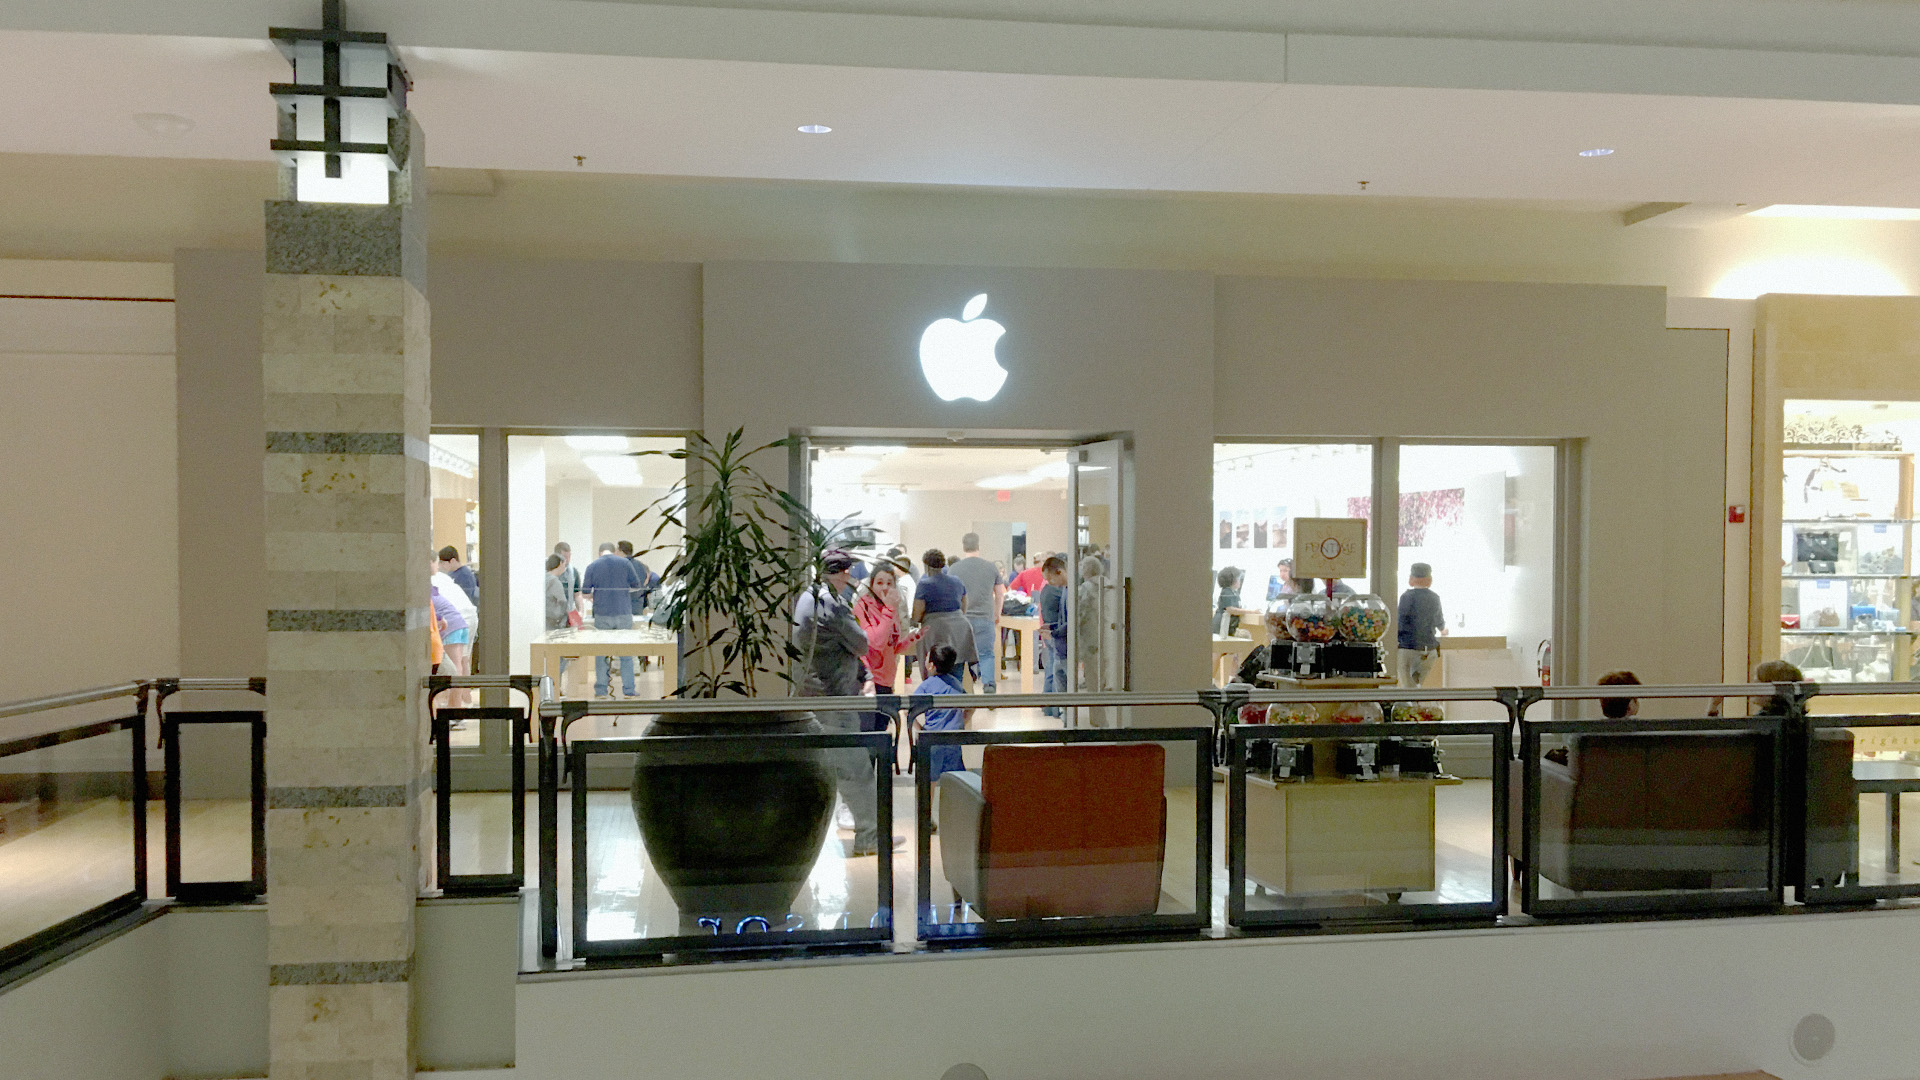 Machines is the largest Apple Premium Reseller (APR) in Malaysia with 8 stores situated within the Klang Valley and 2 store in Johor Bahru. We showcase the latest and widest range of iPad, iPhone, iPod, Apple Mac portables (laptops) and desktops, software and accessories.